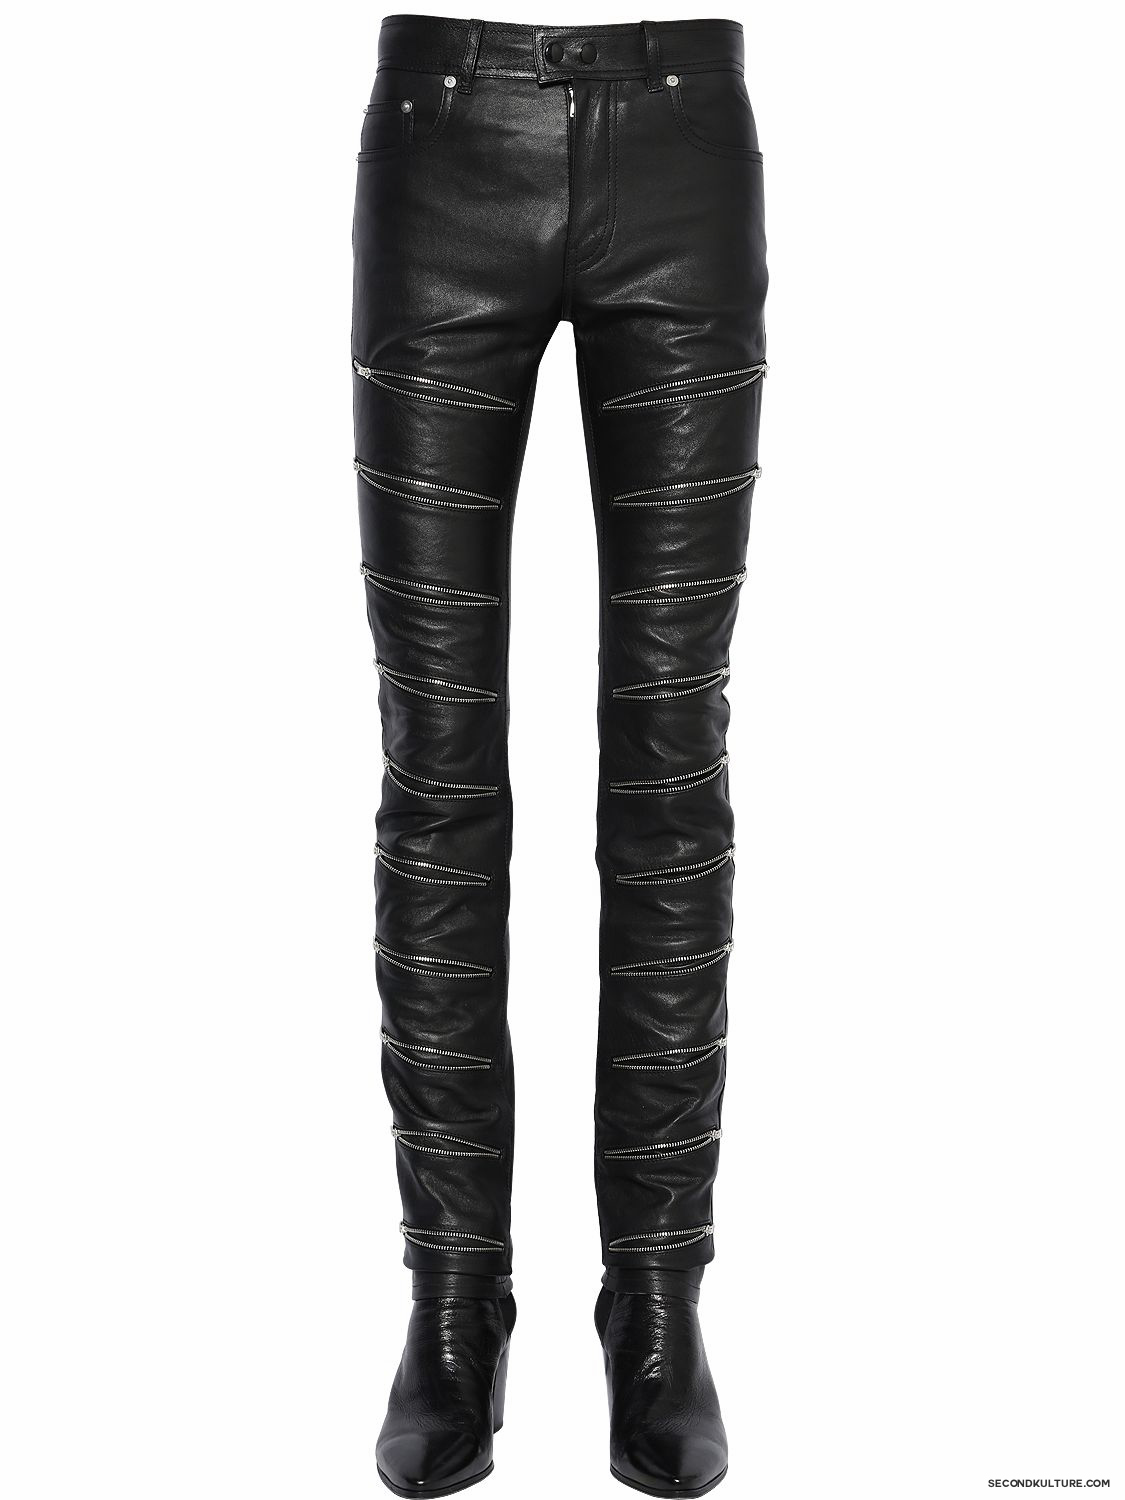 Saint-Laurent-15cm-Black-Multi-Zipped-Nappa-Leather-Pants-Fall-Winter-2015-1